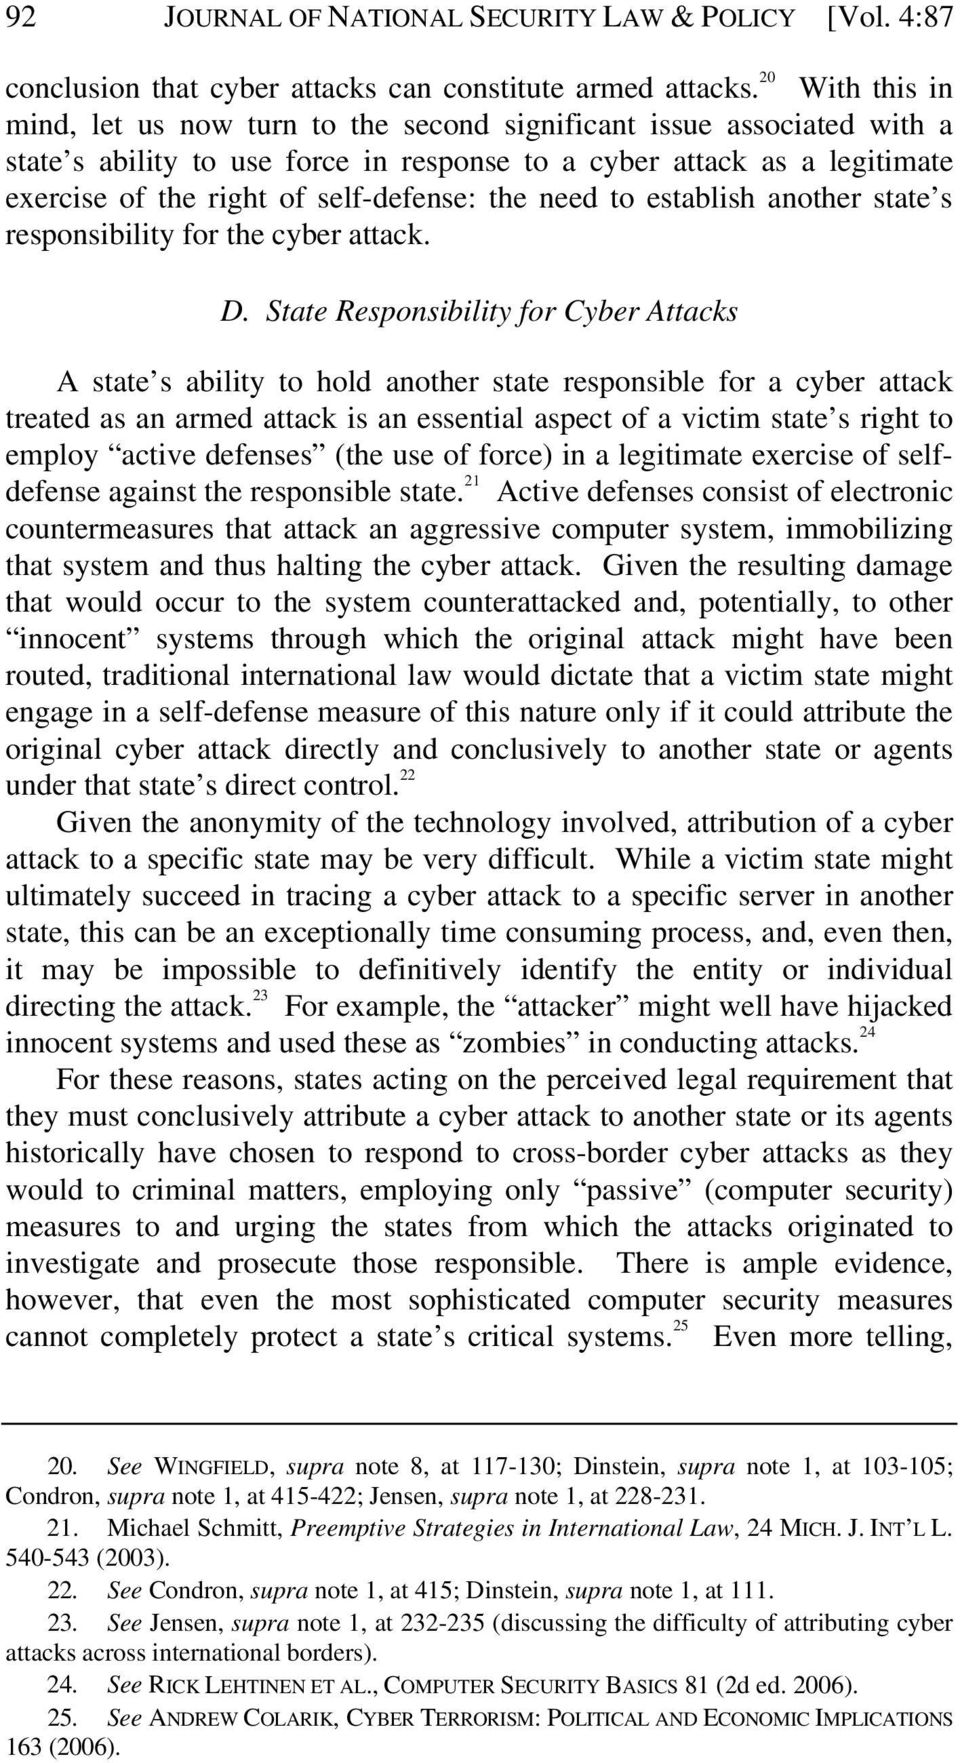 self-defense: the need to establish another state s responsibility for the cyber attack. D.